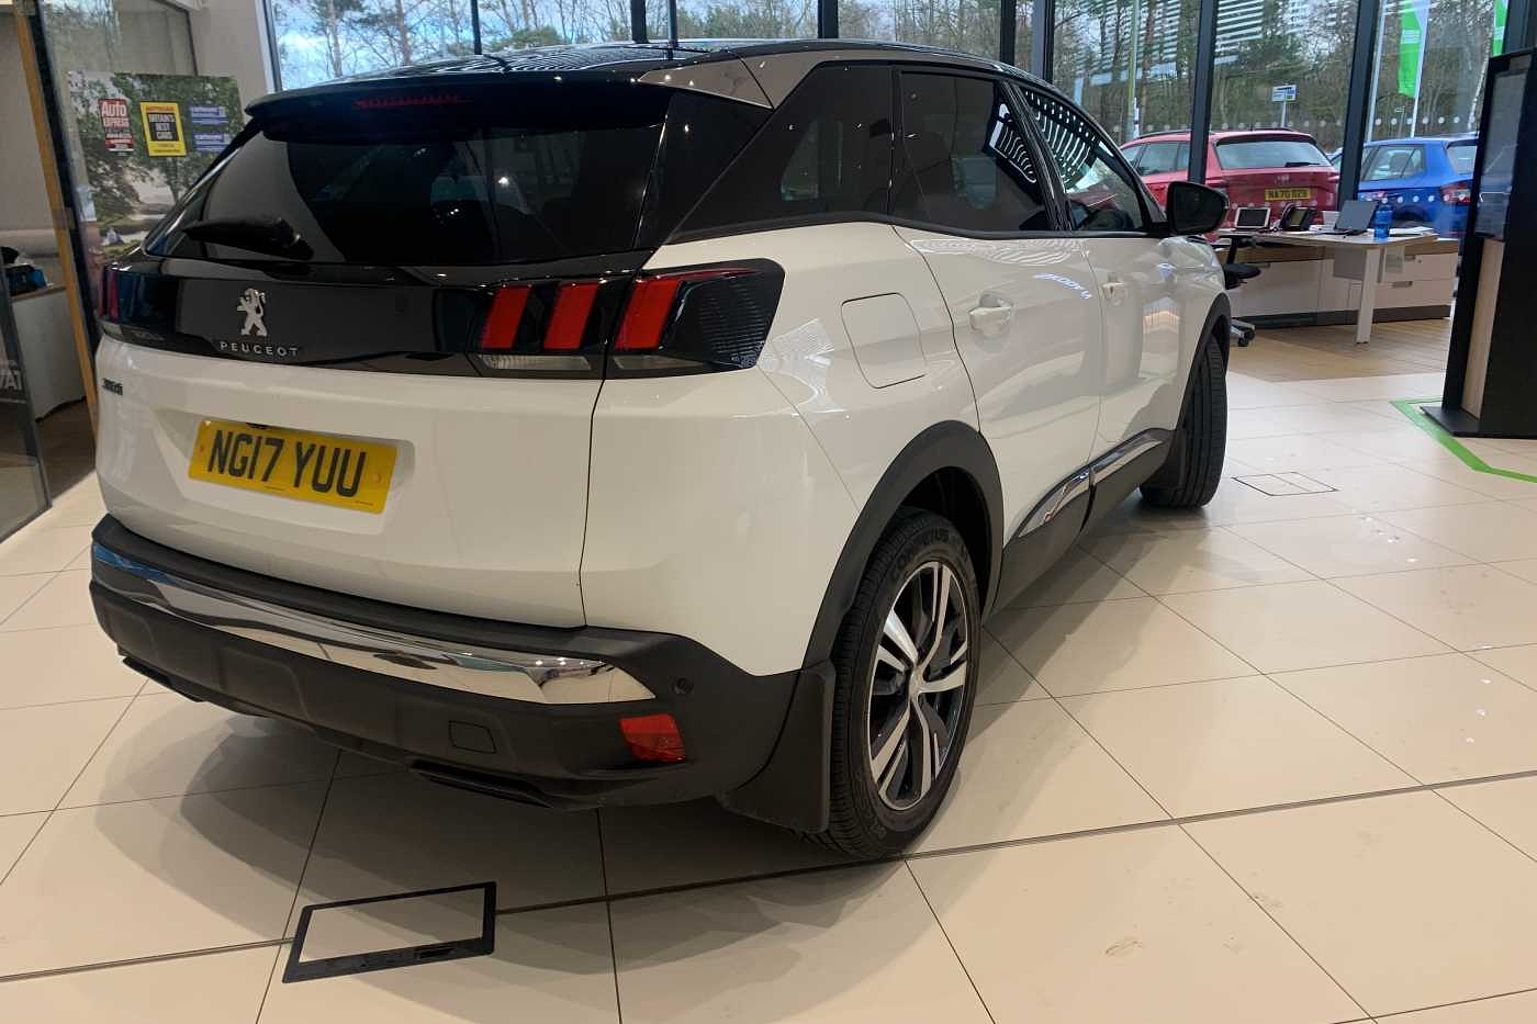 Peugeot 3008 SUV 1.6 BlueHDi (120bhp) Allure (s/s) EAT6